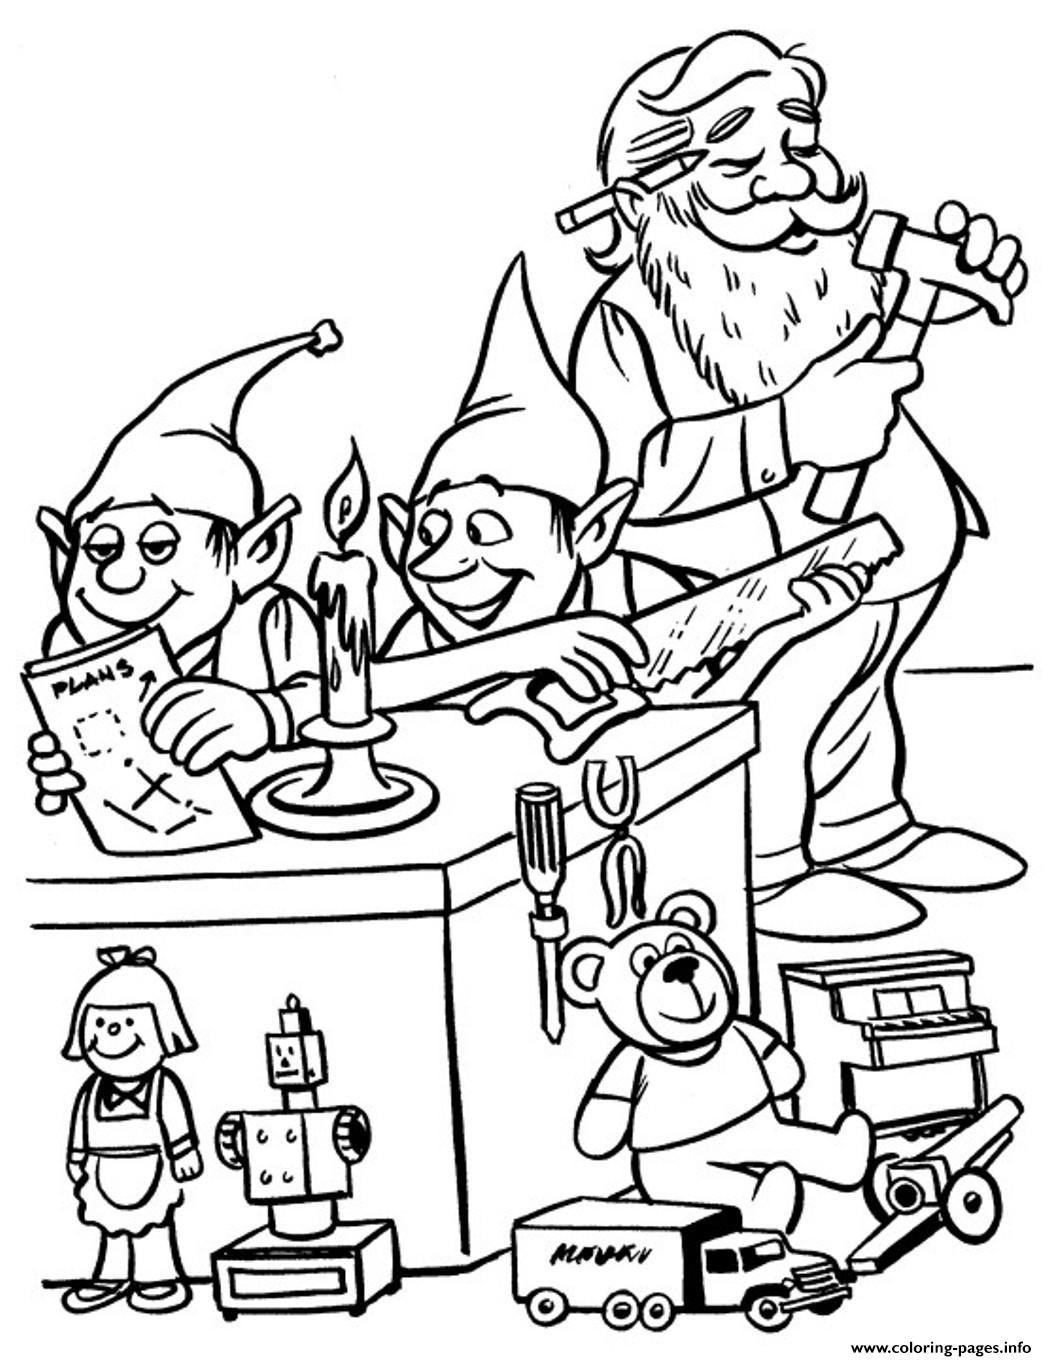 Elves And Santa Christmas S For Kids4a74 Coloring Pages